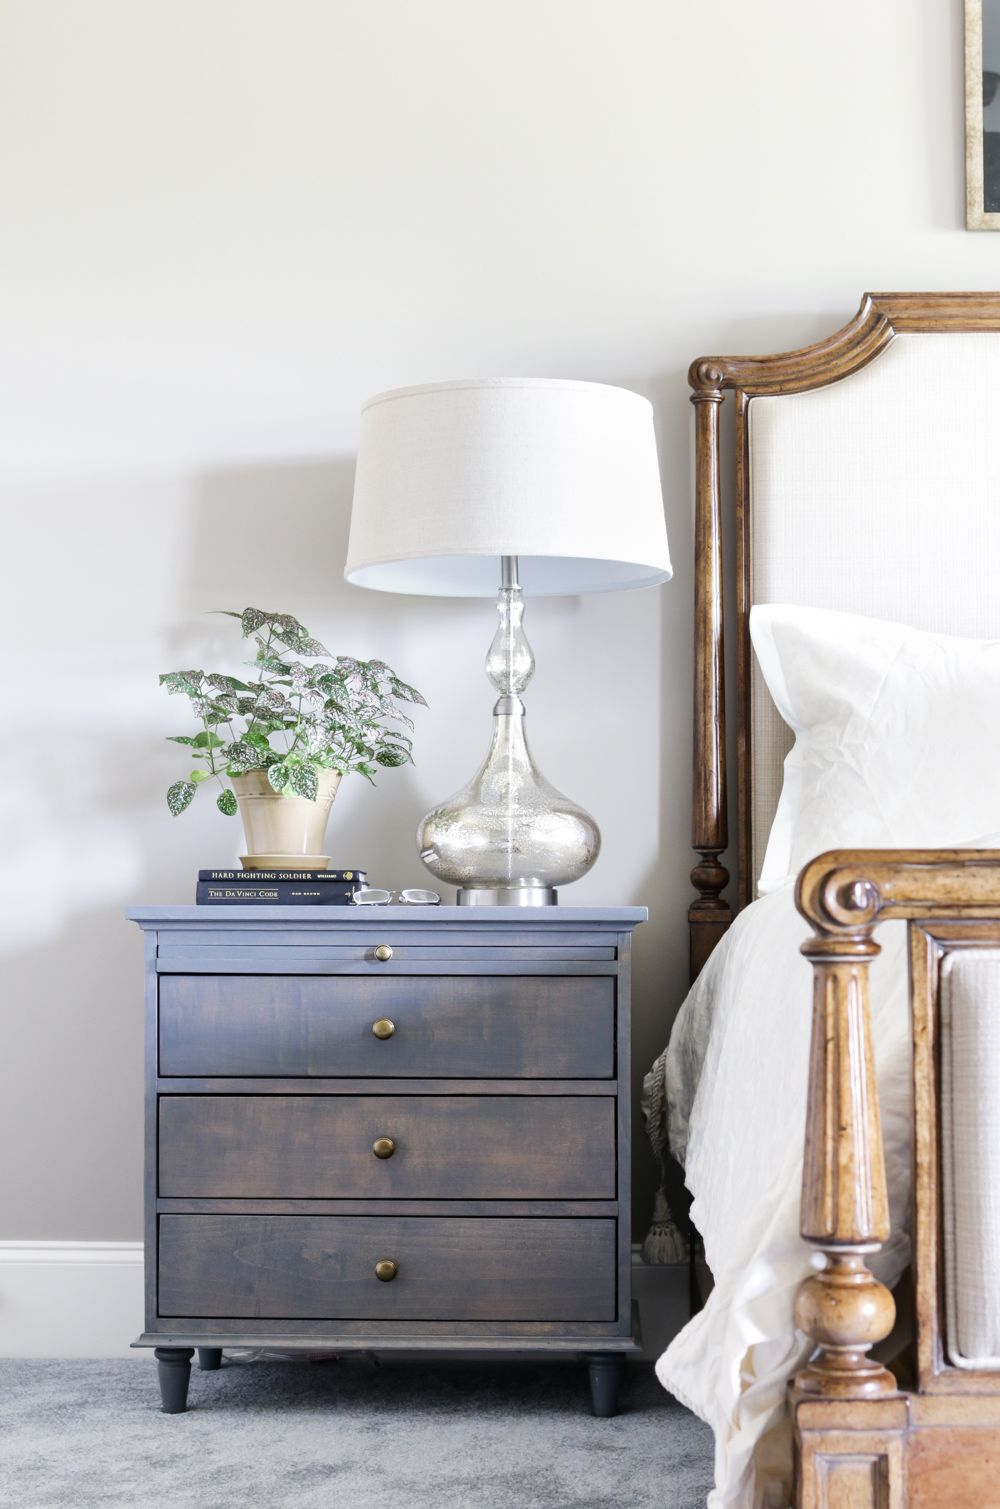 How to build a nightstand with built in